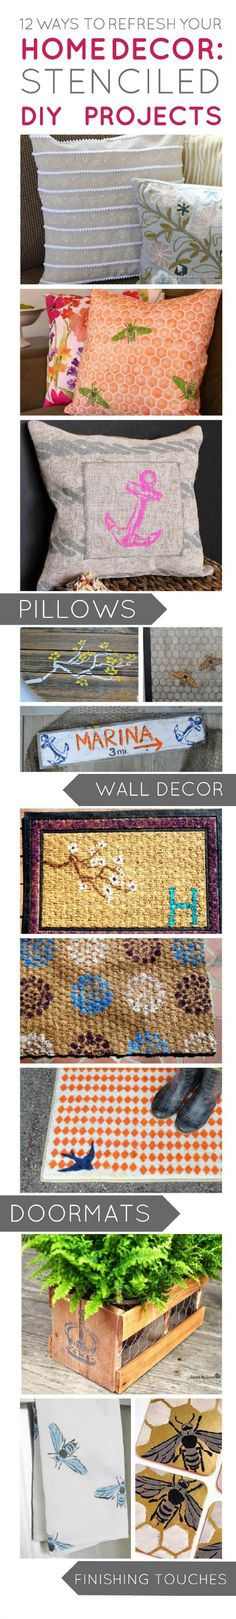 12 #DIY Home Decor Projects using @E D Roth / Stencil1 at Joann.com or Jo-Ann Stores